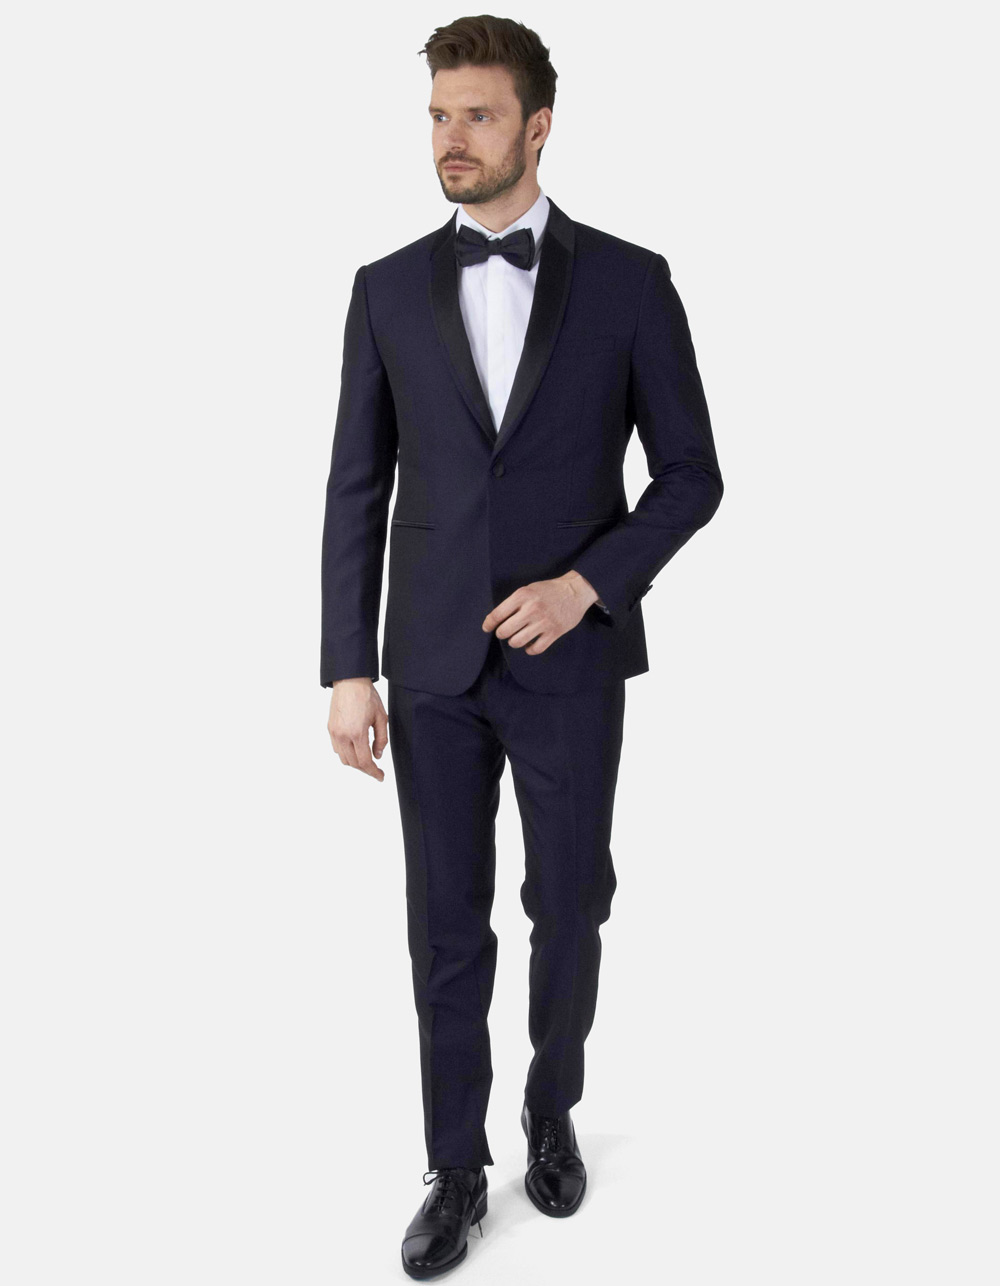 Ceremony dark blue suit